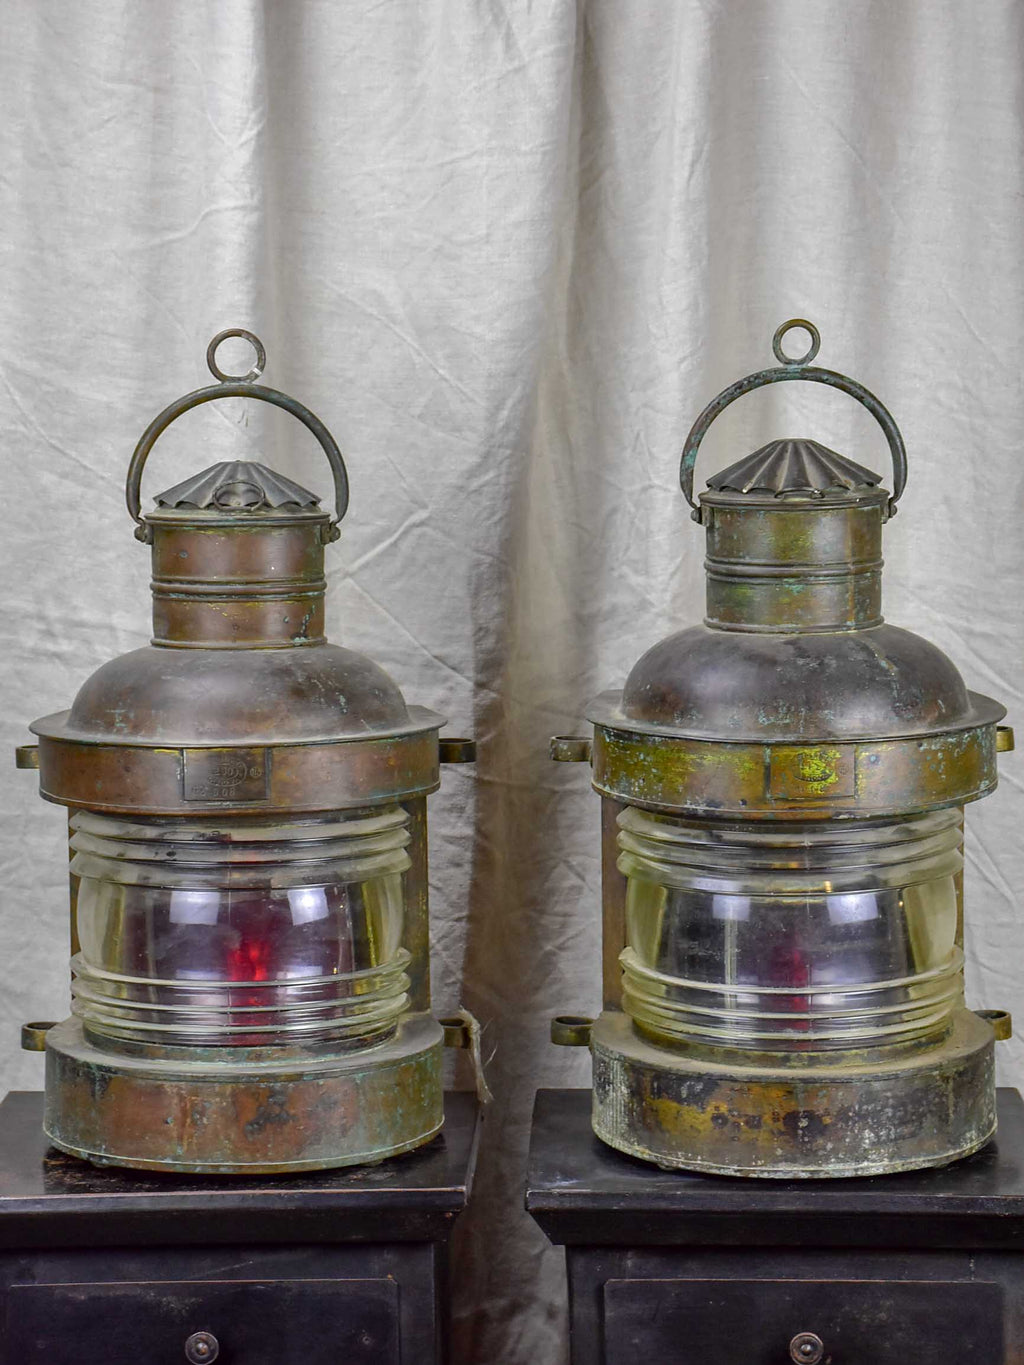 Pair of antique boat lanterns - 1908 Genova